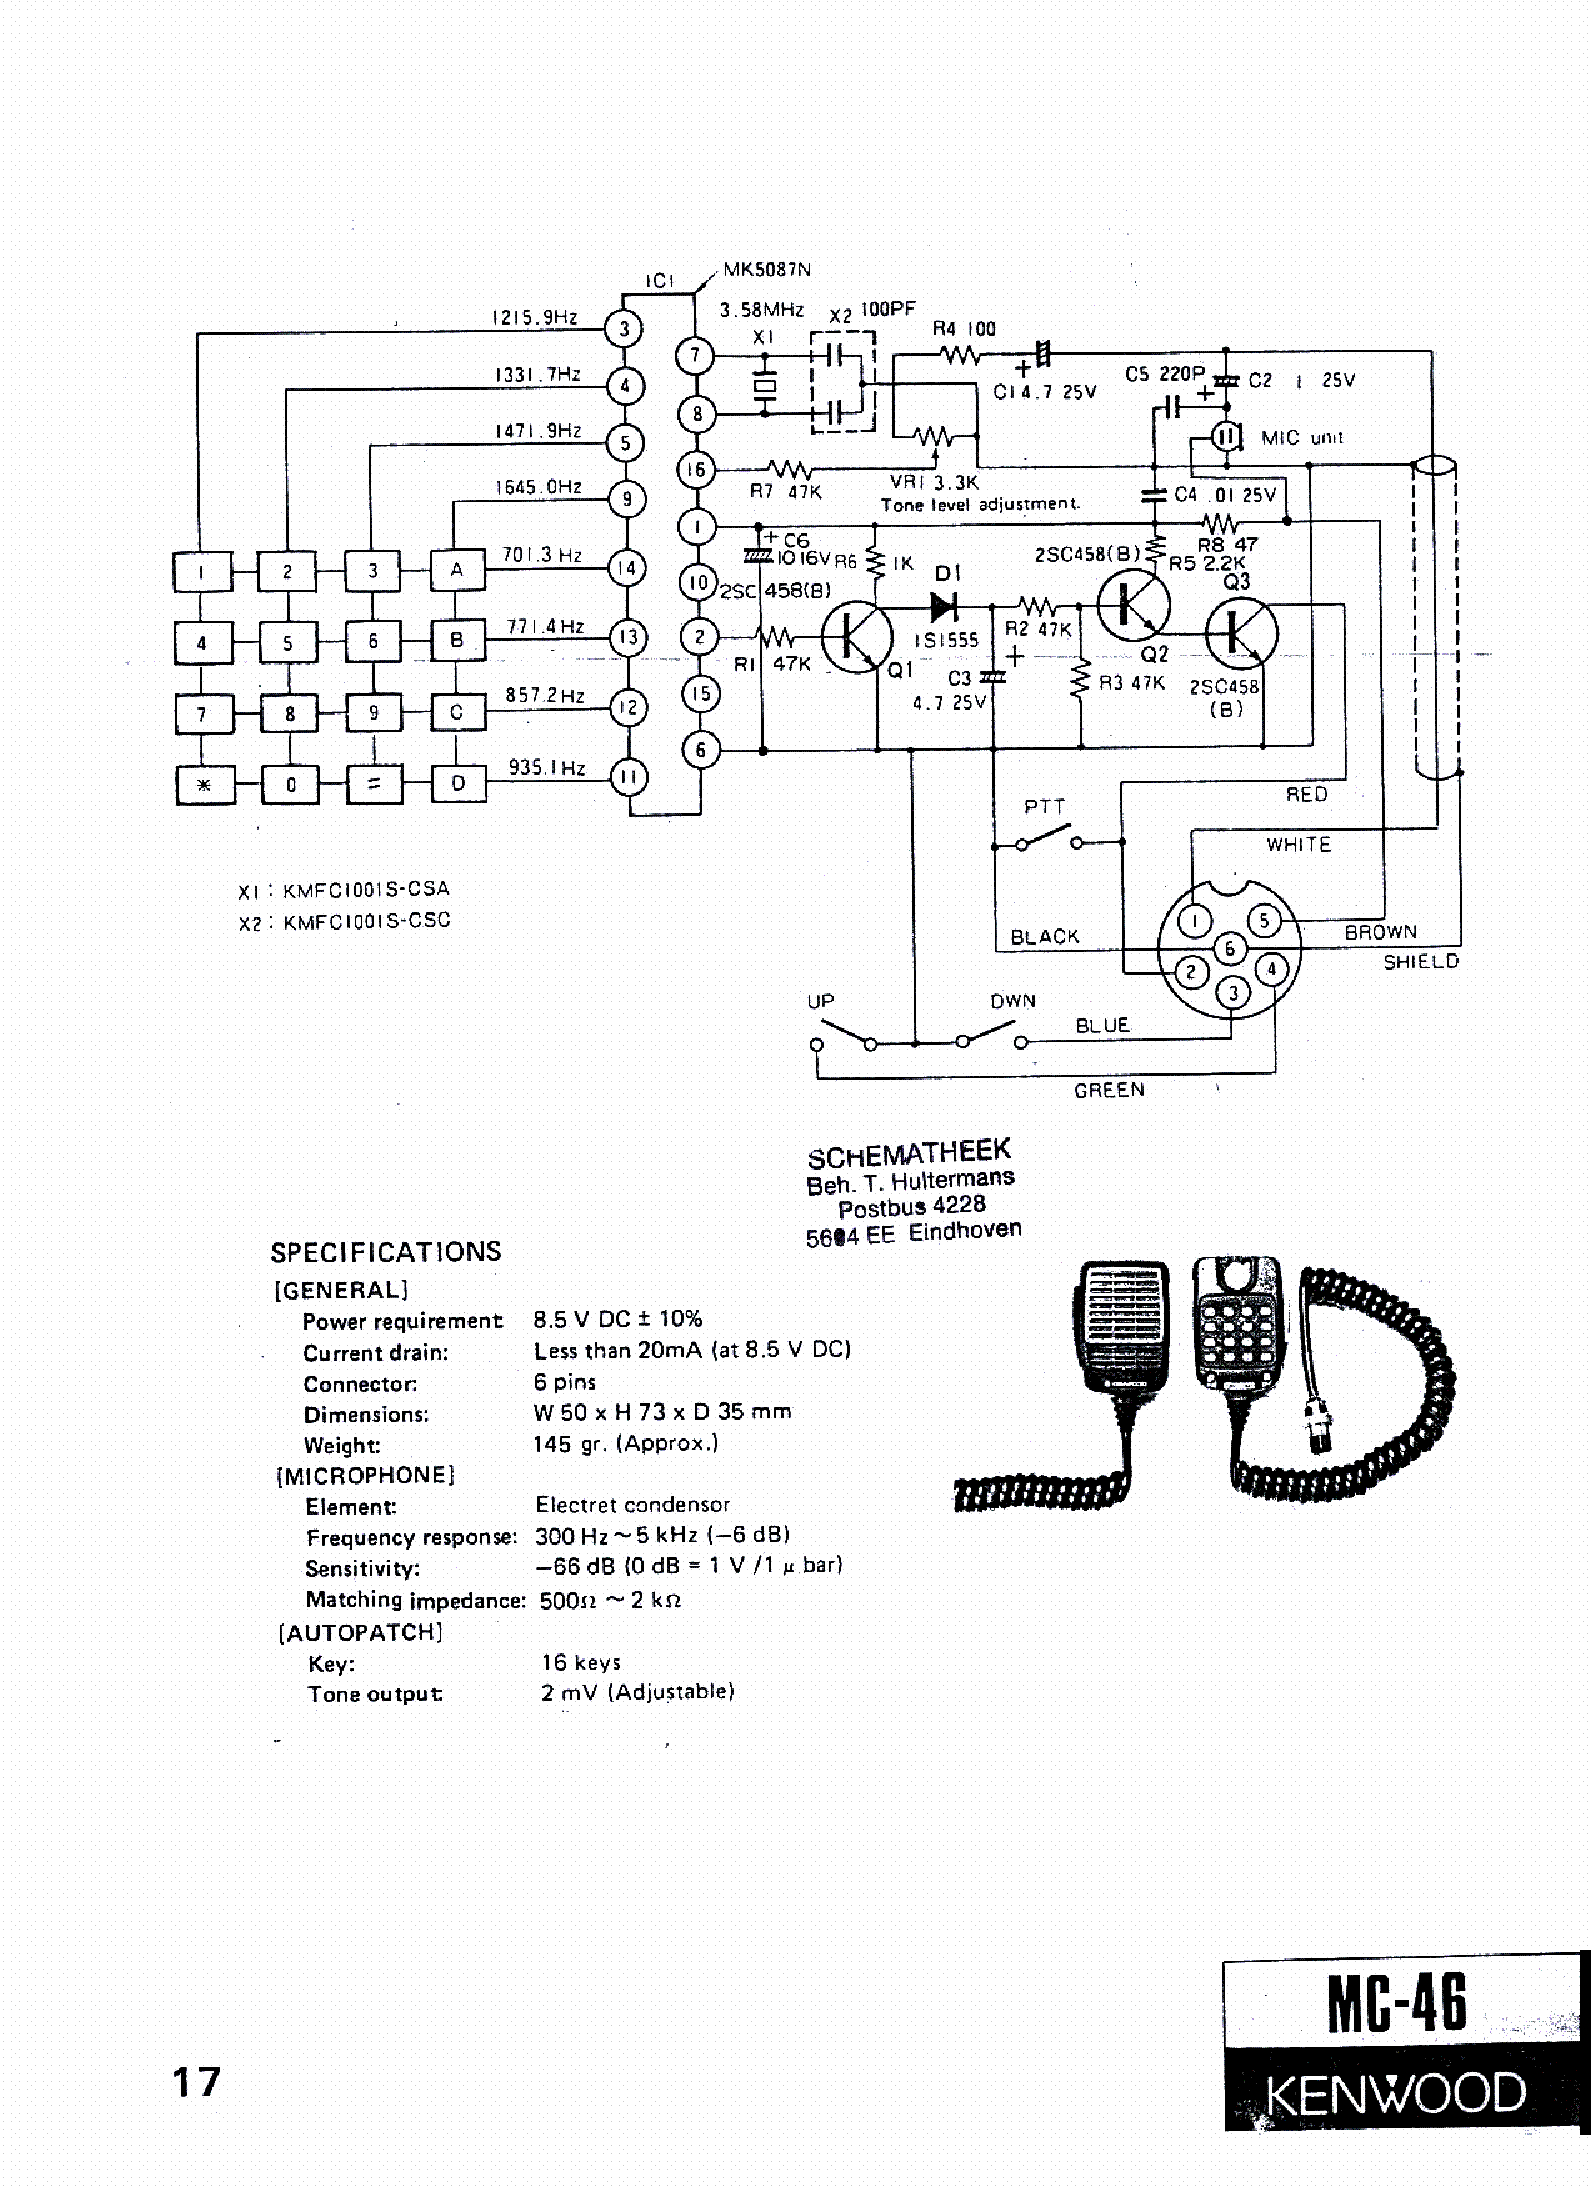 hight resolution of kenwood mc 46 sch service manual download schematics eeprom kenwood radio diagram kenwood mc